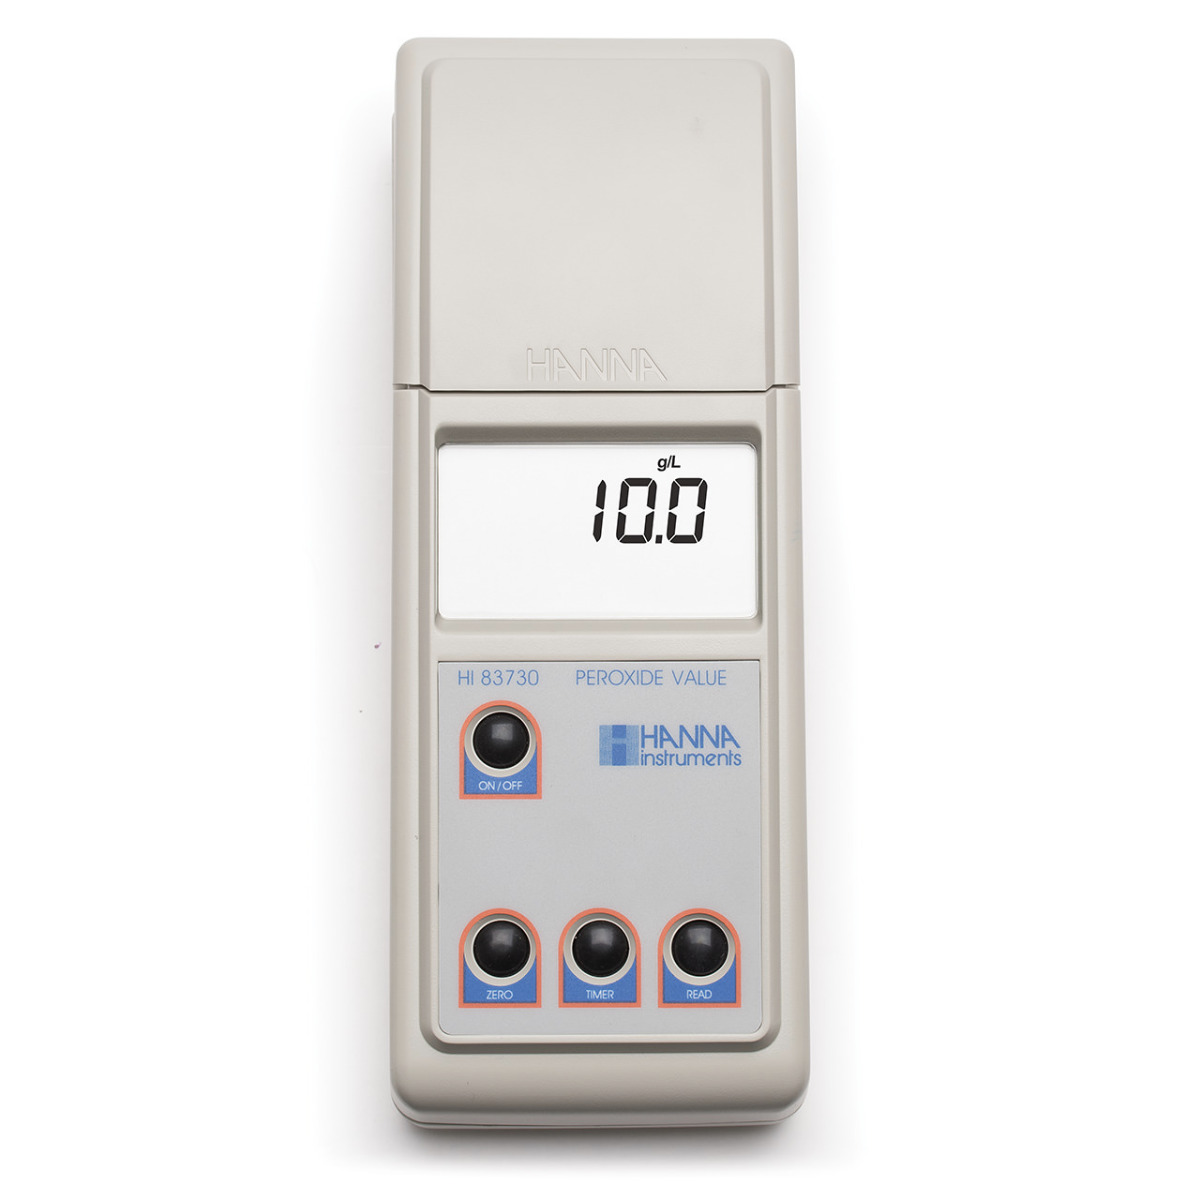 Portable Photometer for Determination of Peroxide Value in Oils - HI83730